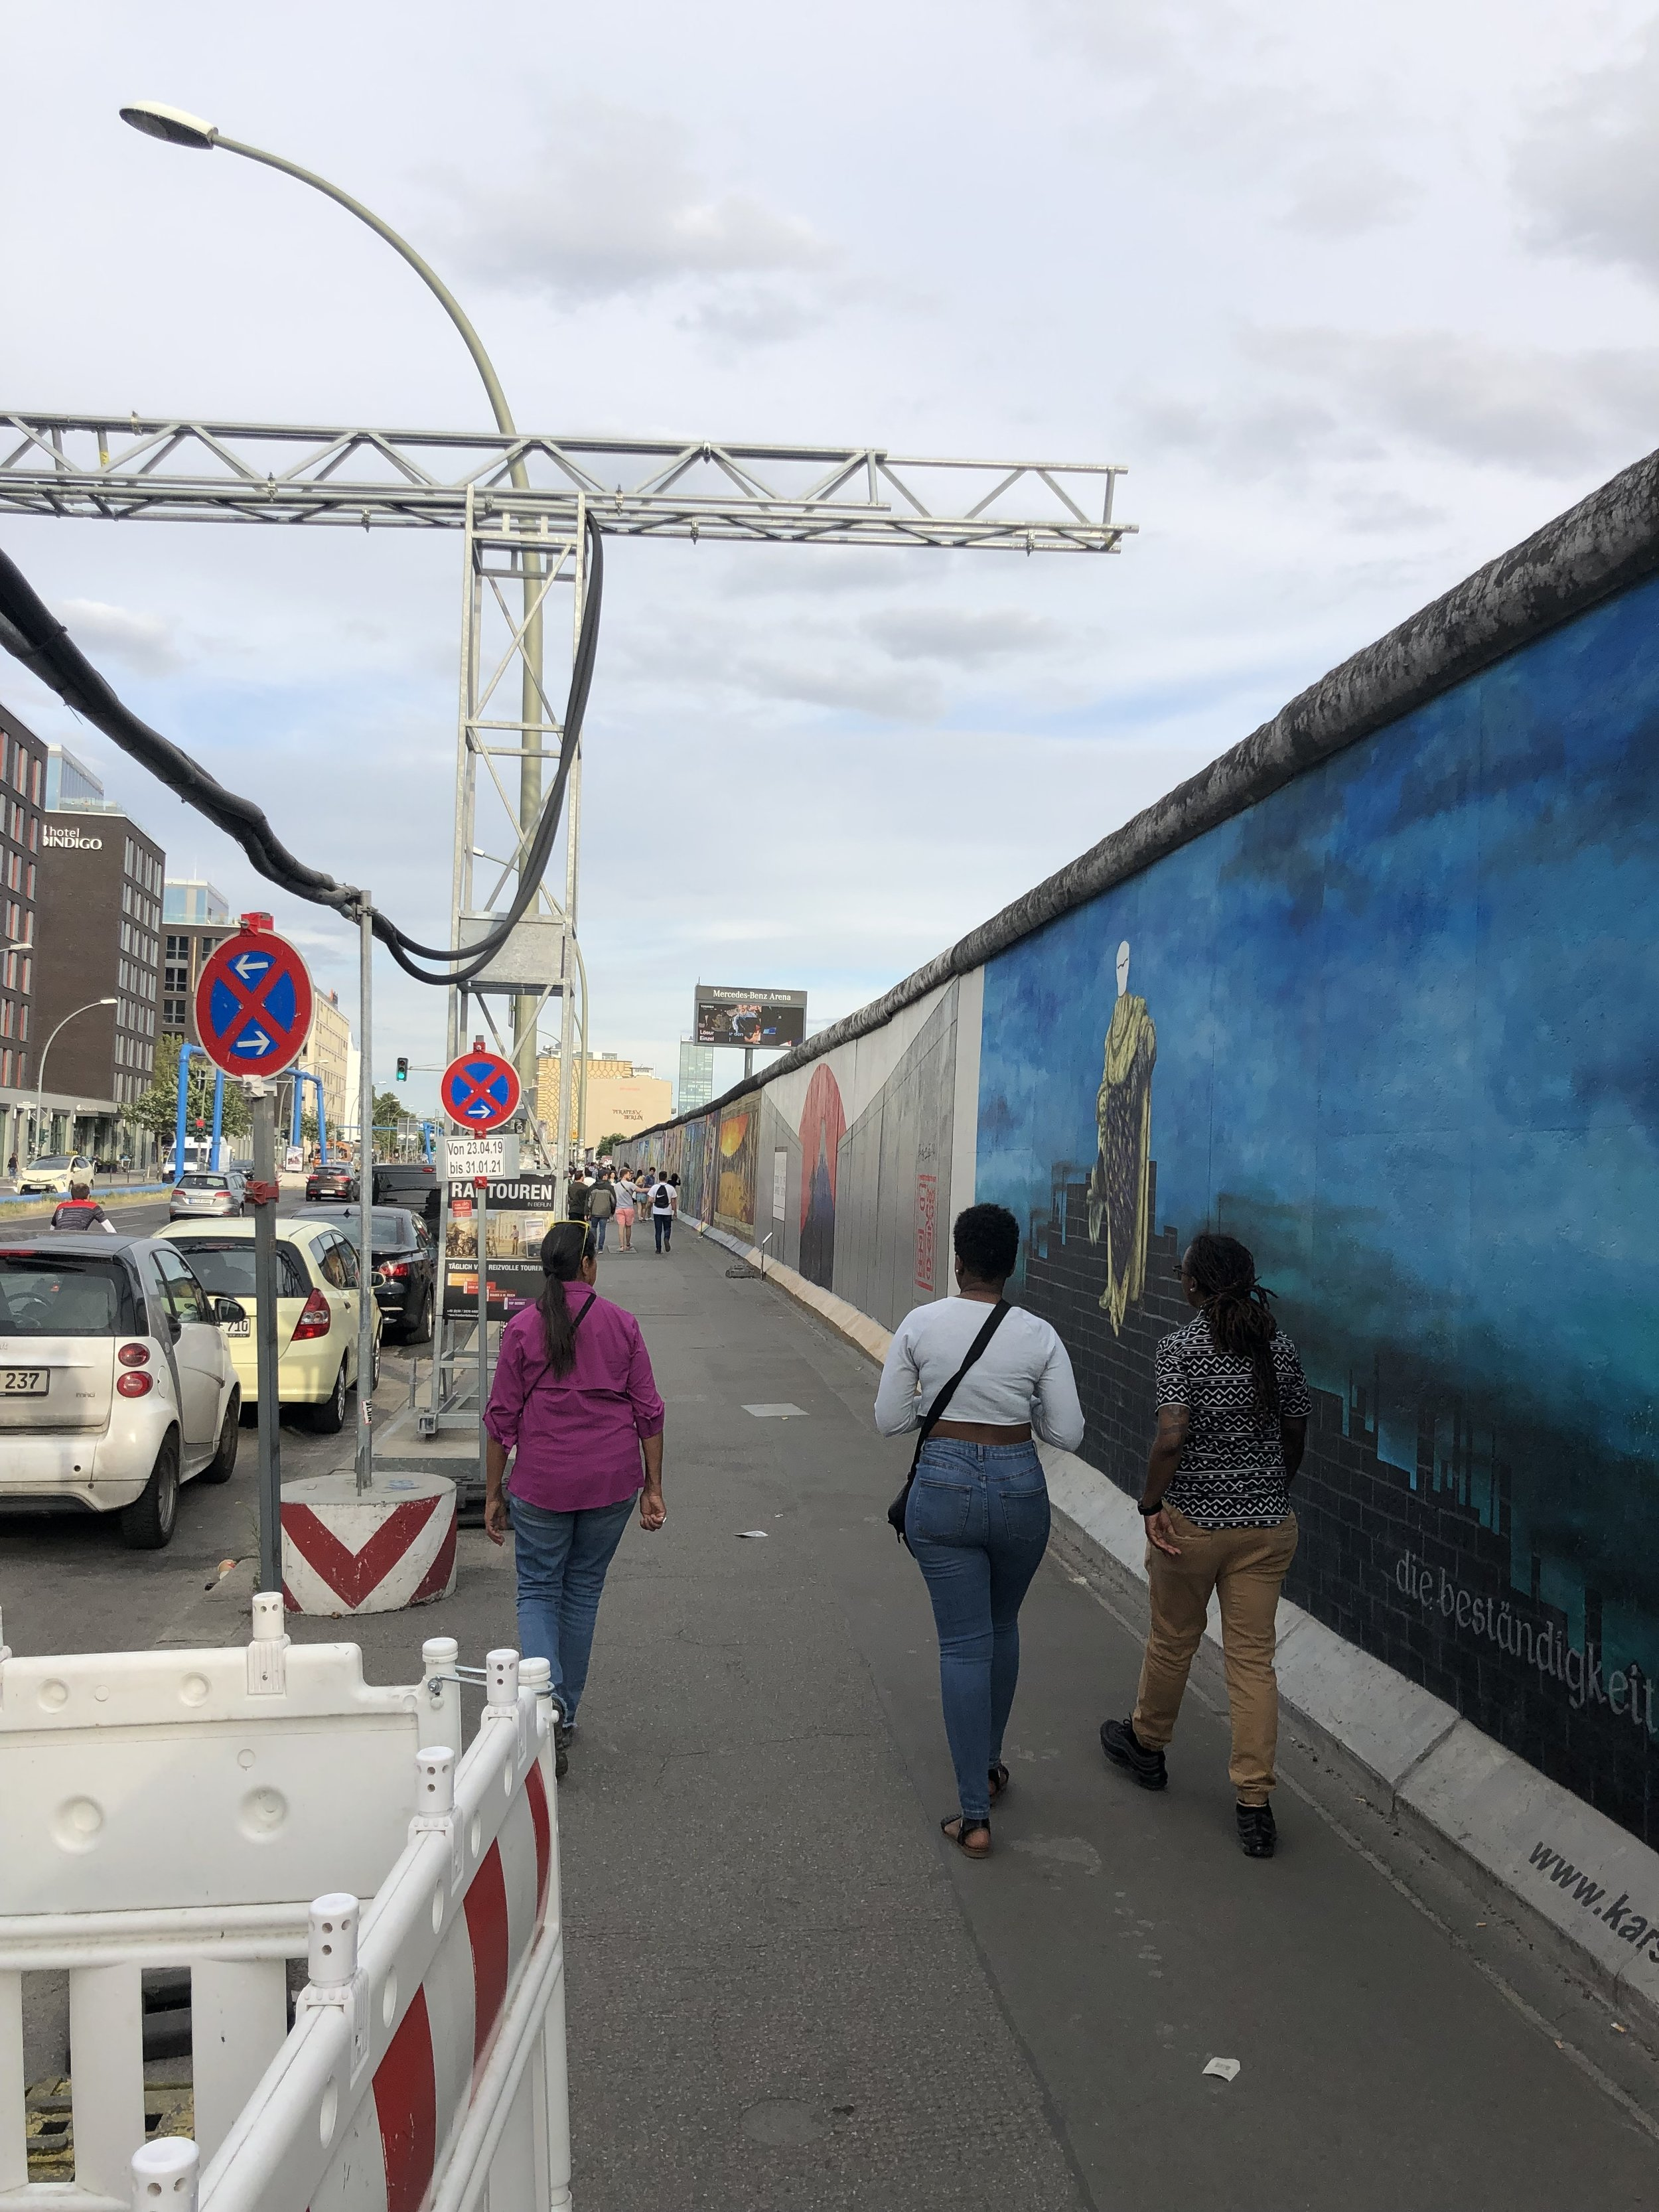 In another part of Berlin the wall has been turned into a half mile long street art project.